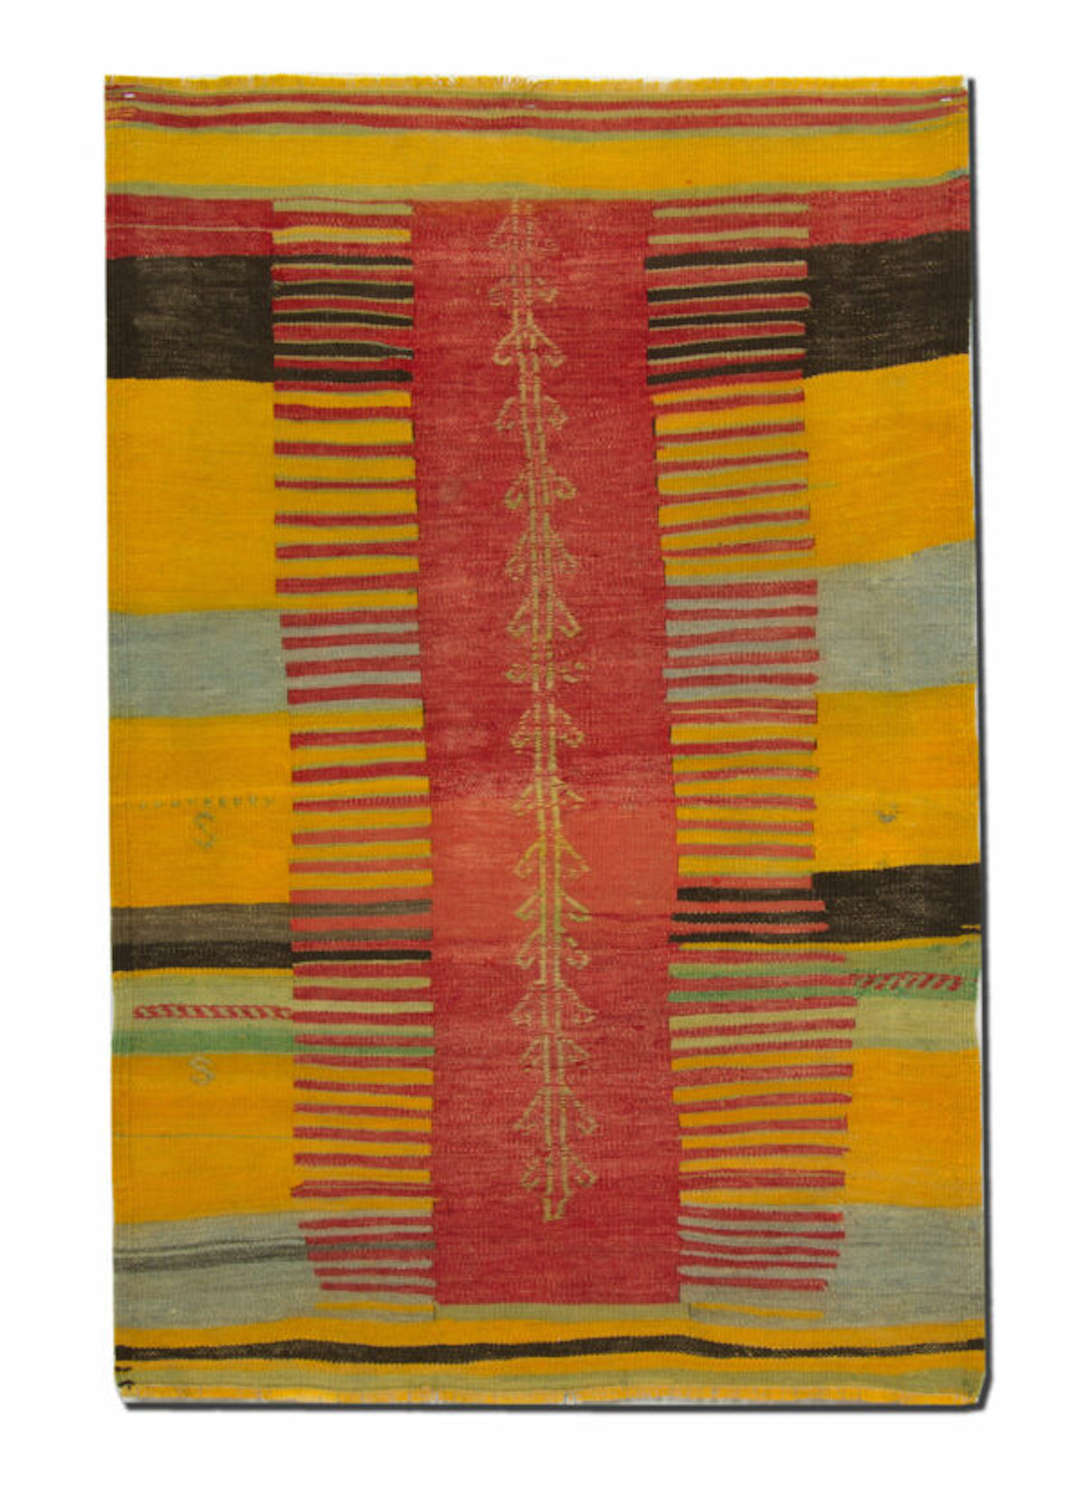 Antique Rugs, Turkish Kilim Rugs